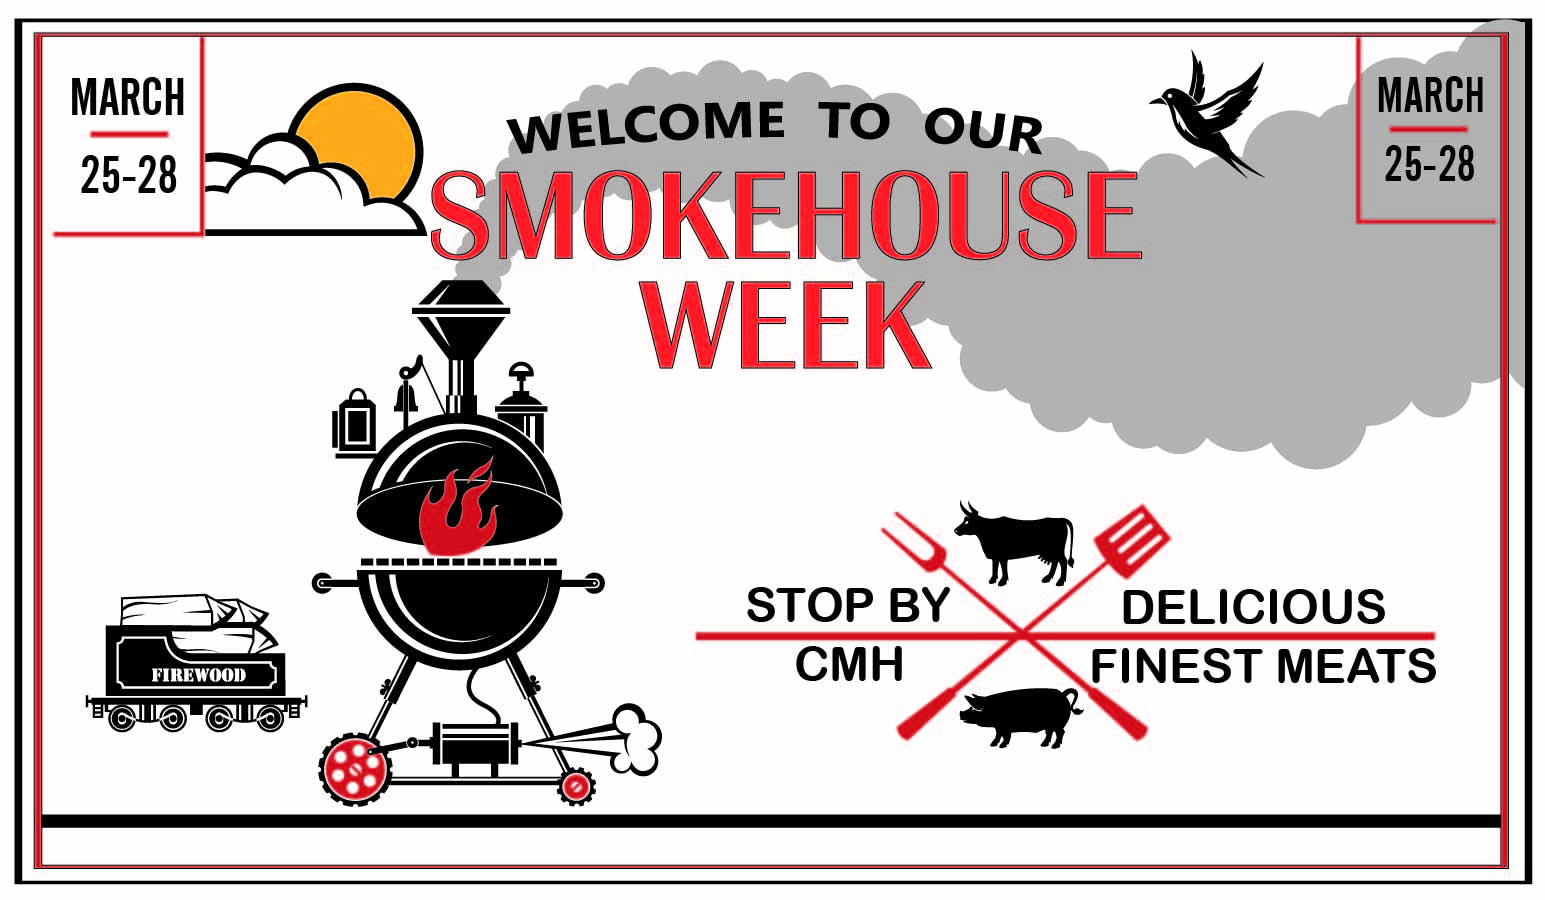 Smokehouse week March 25-28 at the Market in UWP